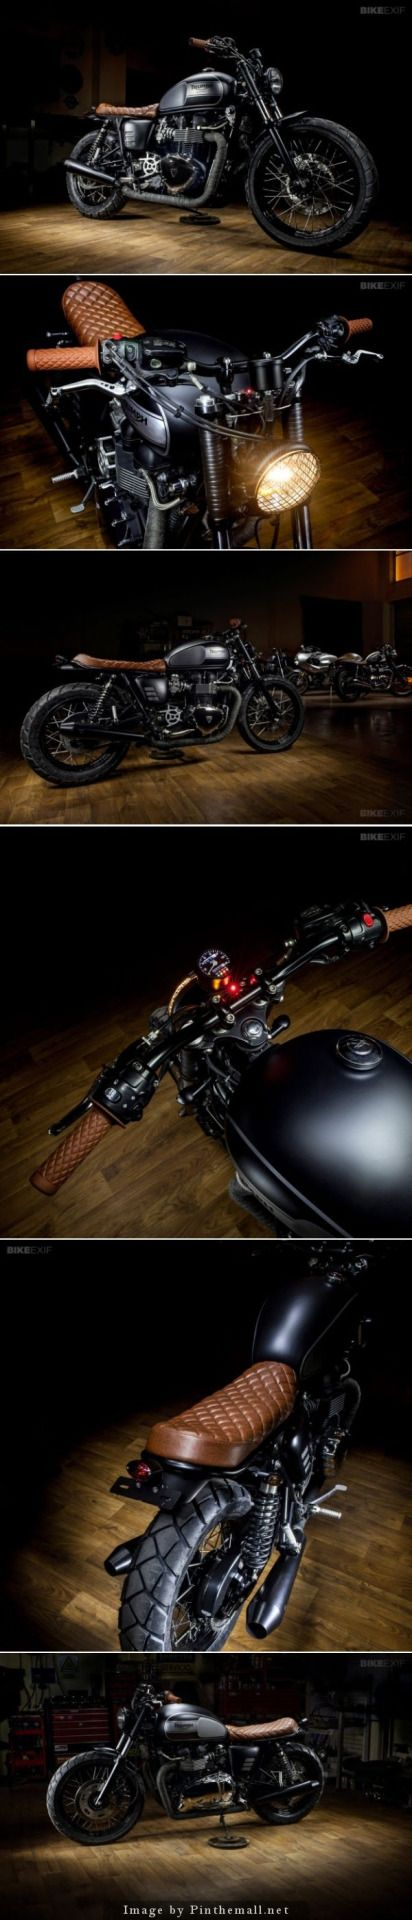 Awesome Motorcycle : Photo